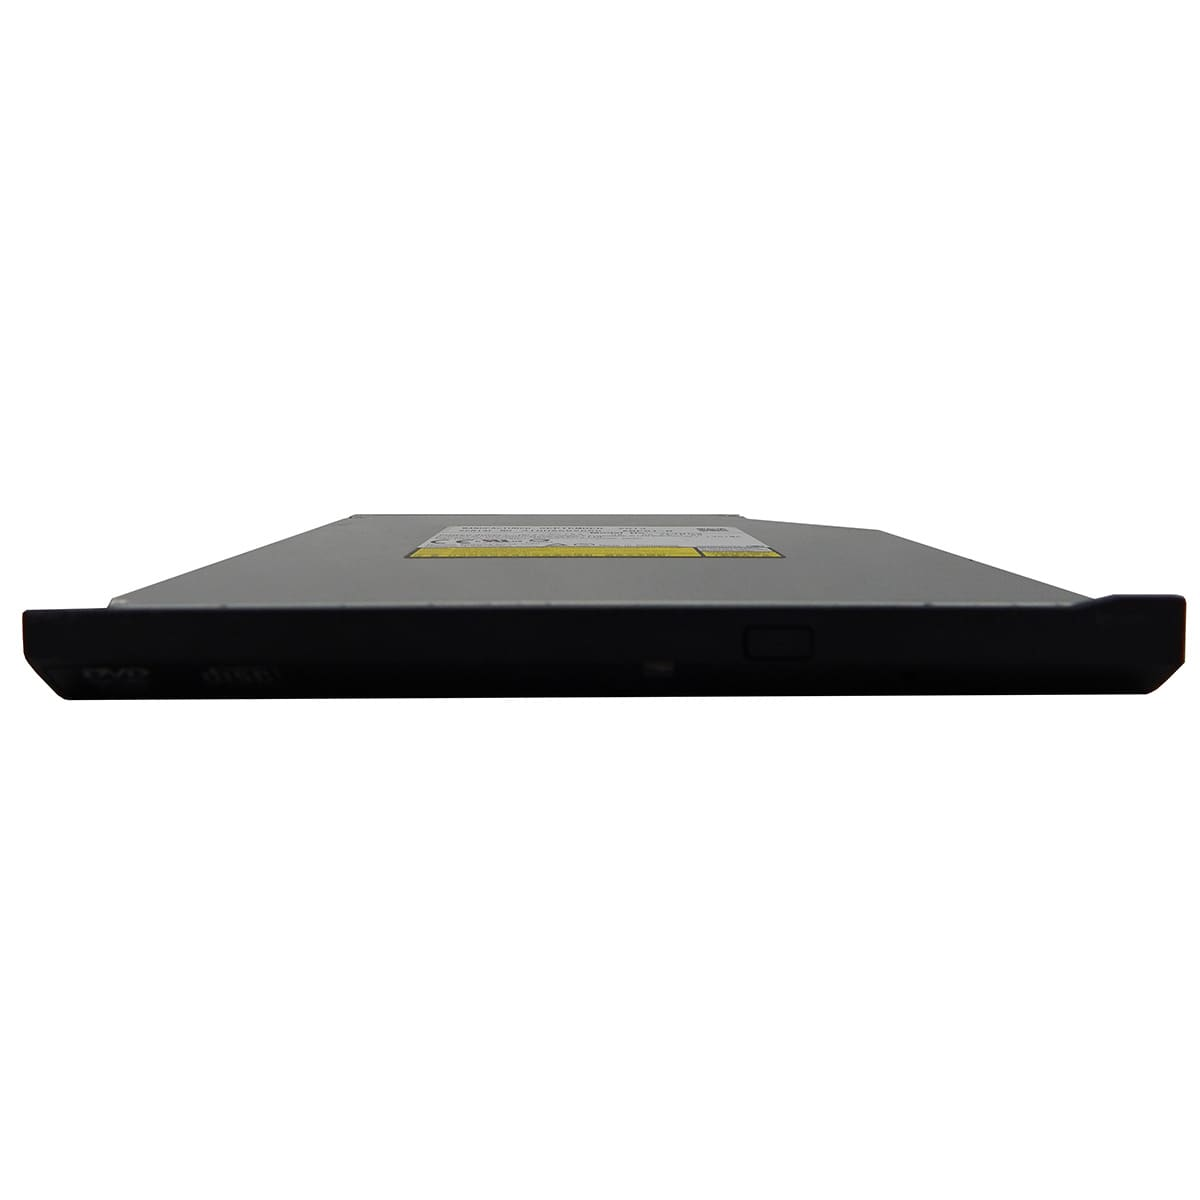 Gravador DVD Super Slim p/ Notebook Panasonic UJ8C2 9.5mm